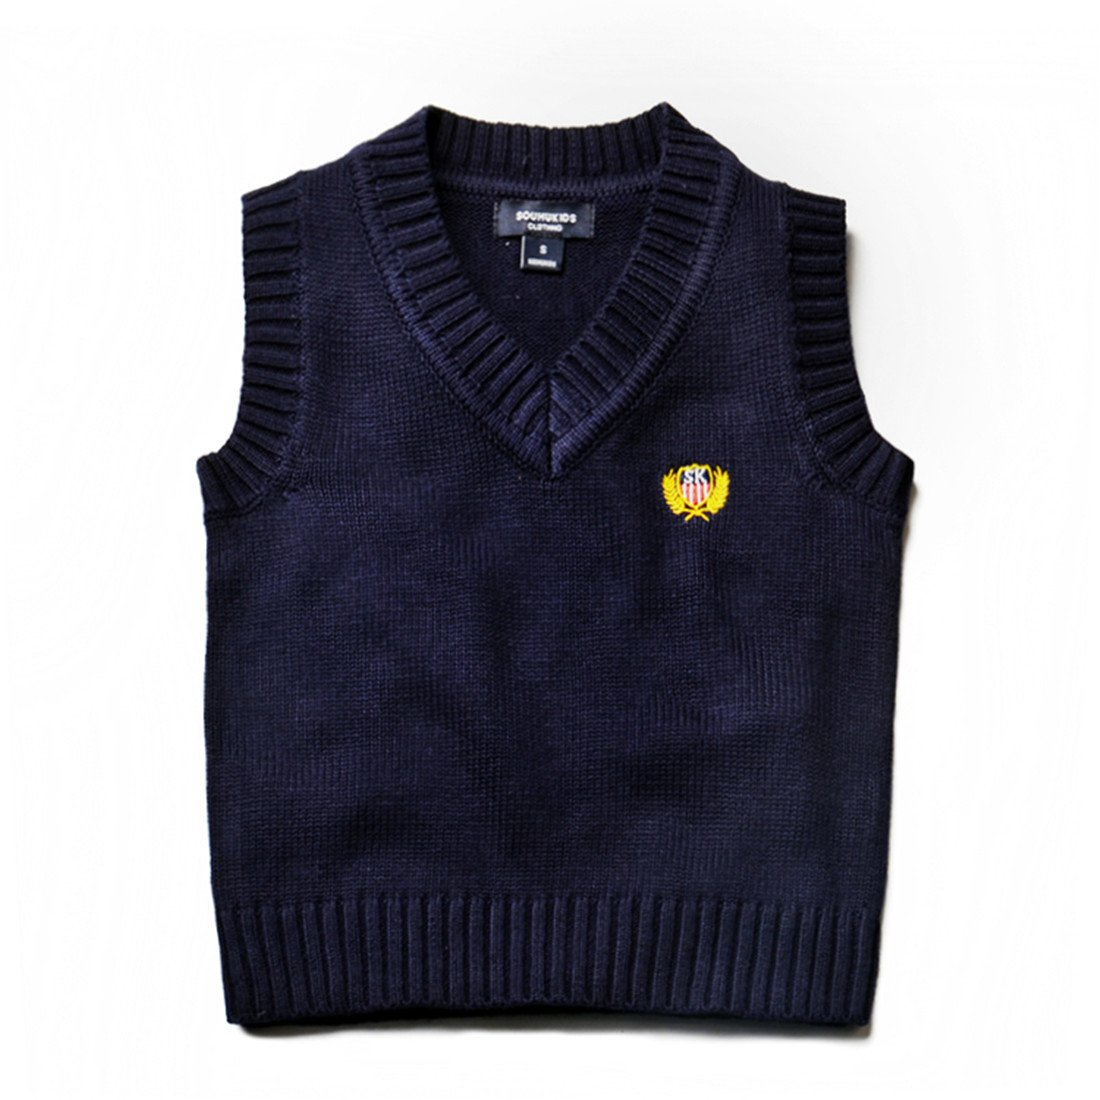 Kids Boys Knit Sweater Vest V-Neck Students Sweater Dark Blue 2T-7T SOUHUKIDS